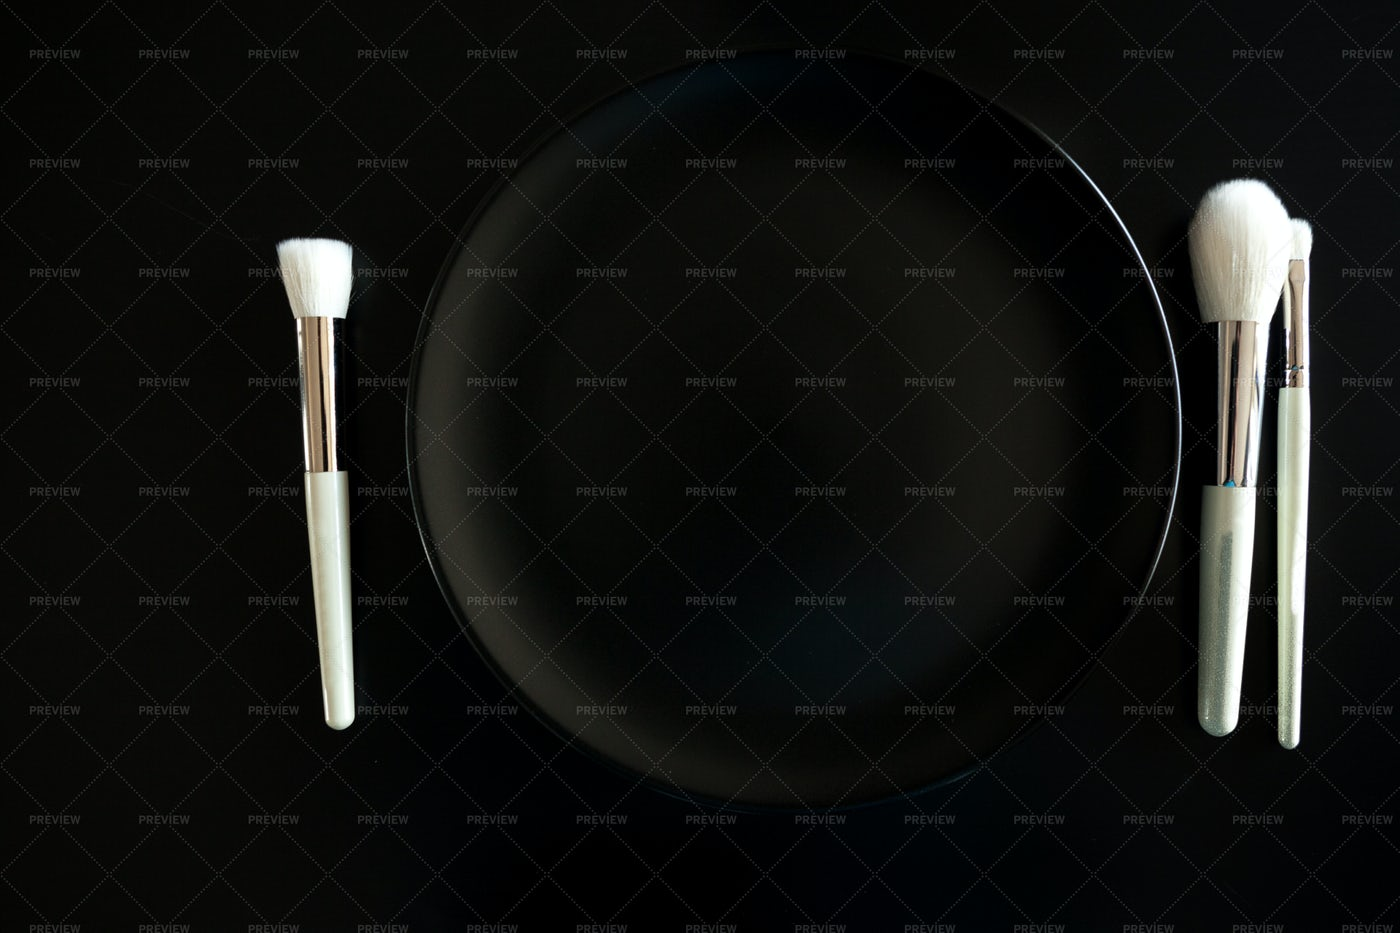 Make Up Brushes As Cutlery: Stock Photos